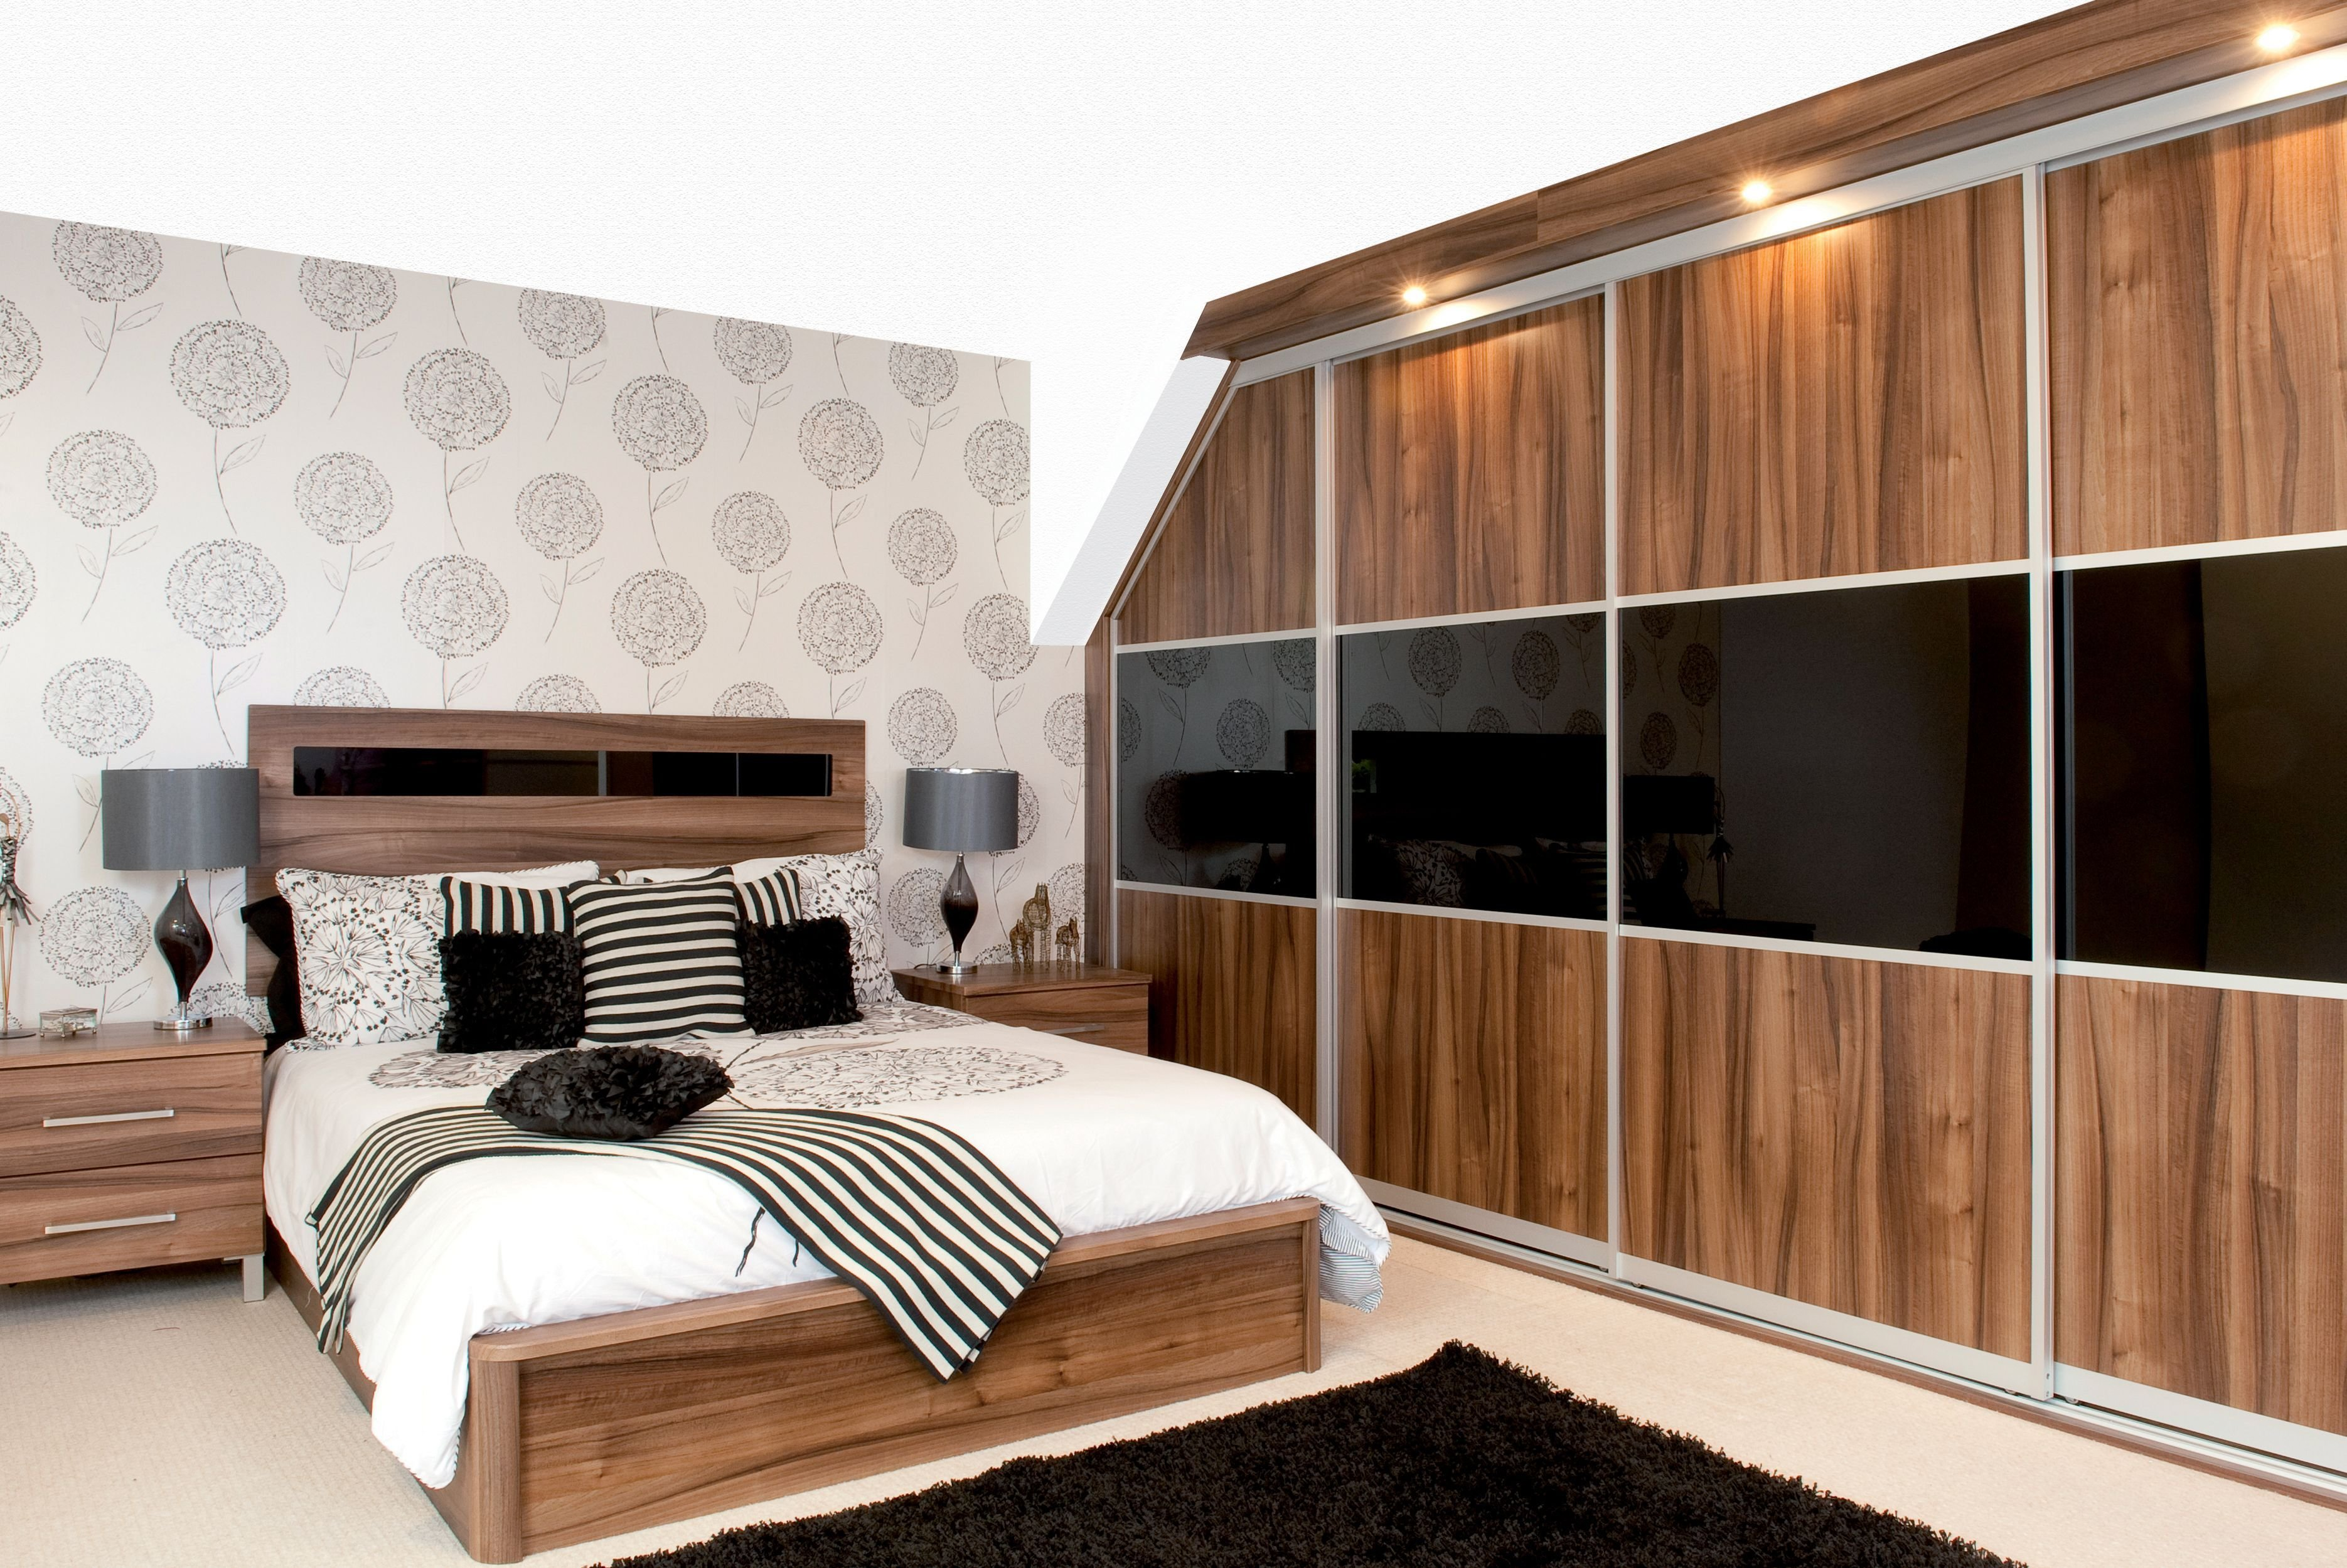 Best Bedroom Storage Buying Guide Ideas Advice Diy At B Q With Pictures